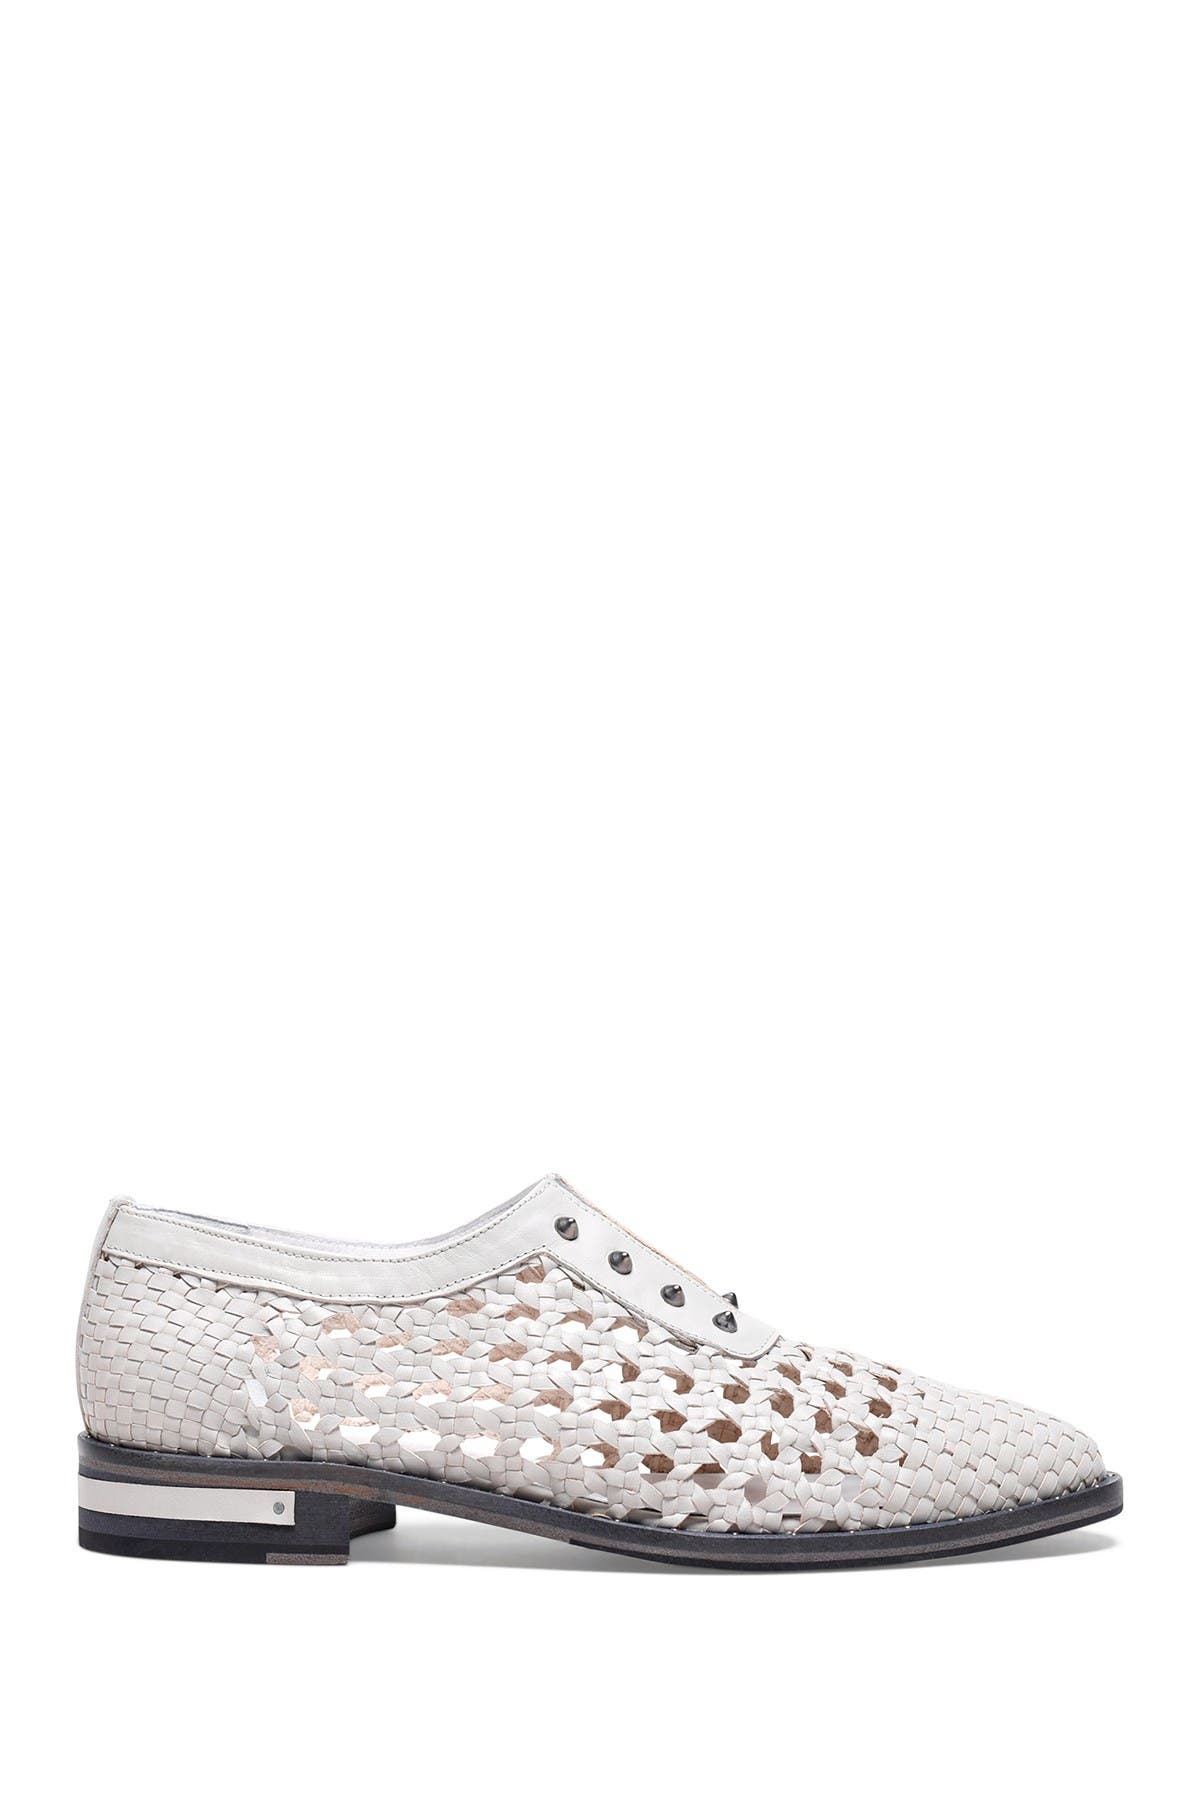 Women's Oxford Shoes   Nordstrom Rack